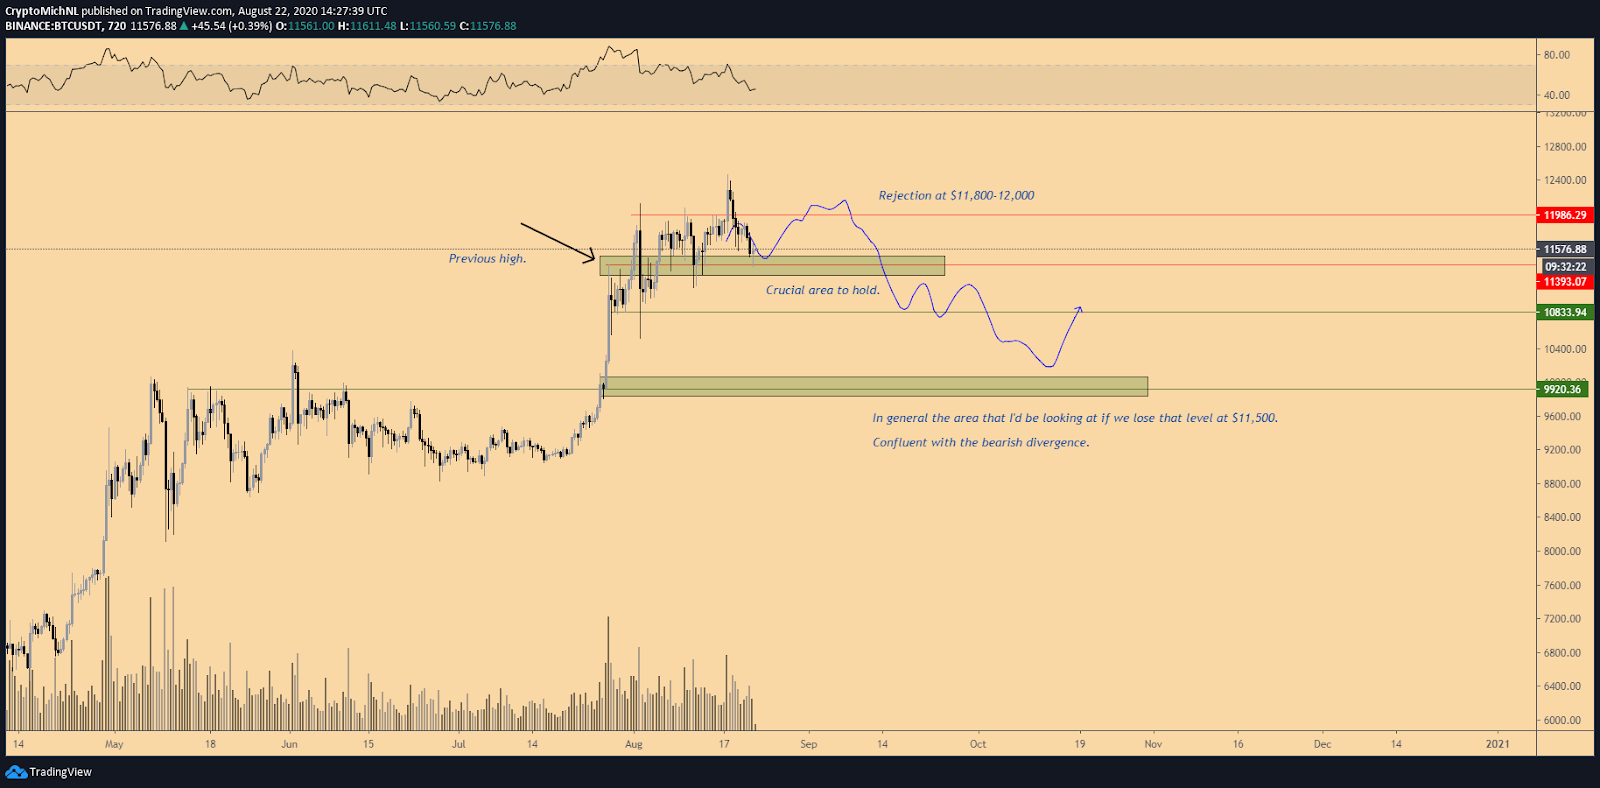 BTC/USDT 12-hour bearish scenario chart. Source: TradingView